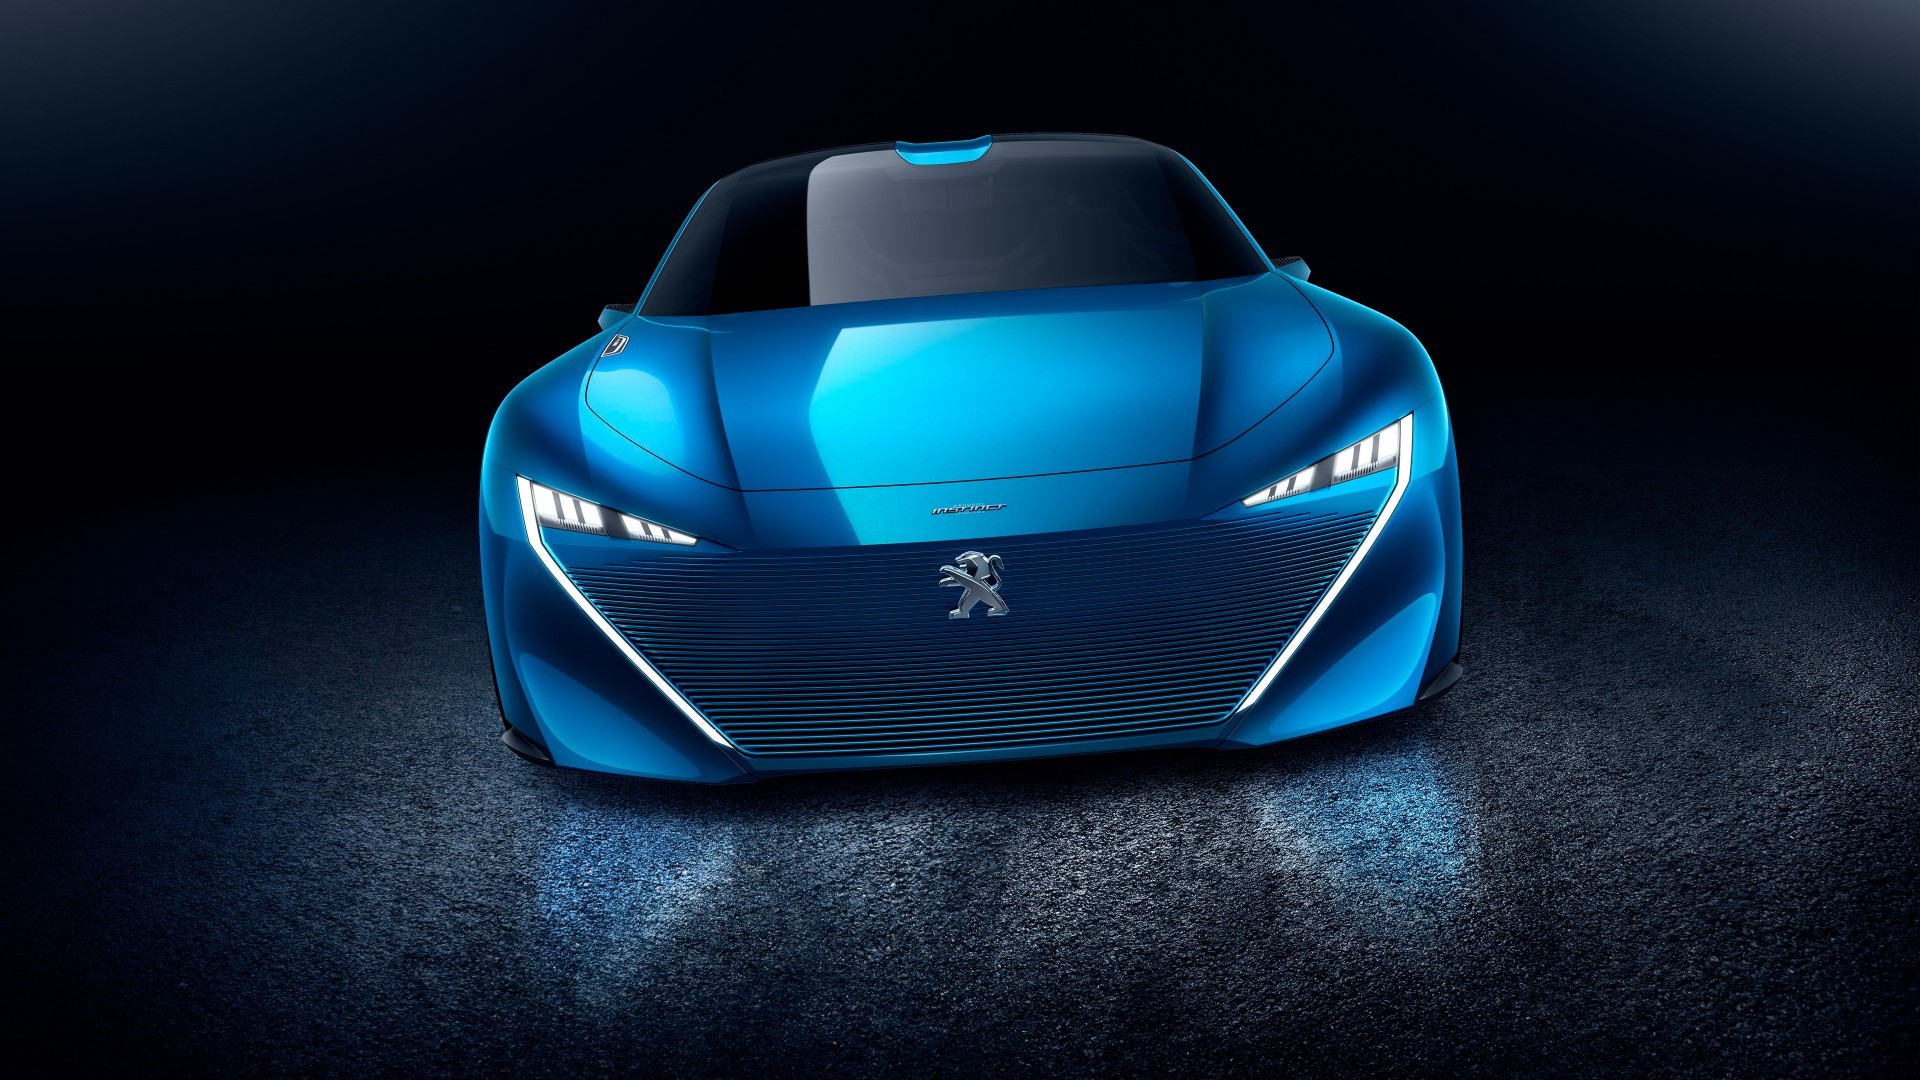 Cute Cool Wallpapers For Iphone 2017 Peugeot Instinct Concept Car 4k Wallpapers Hd